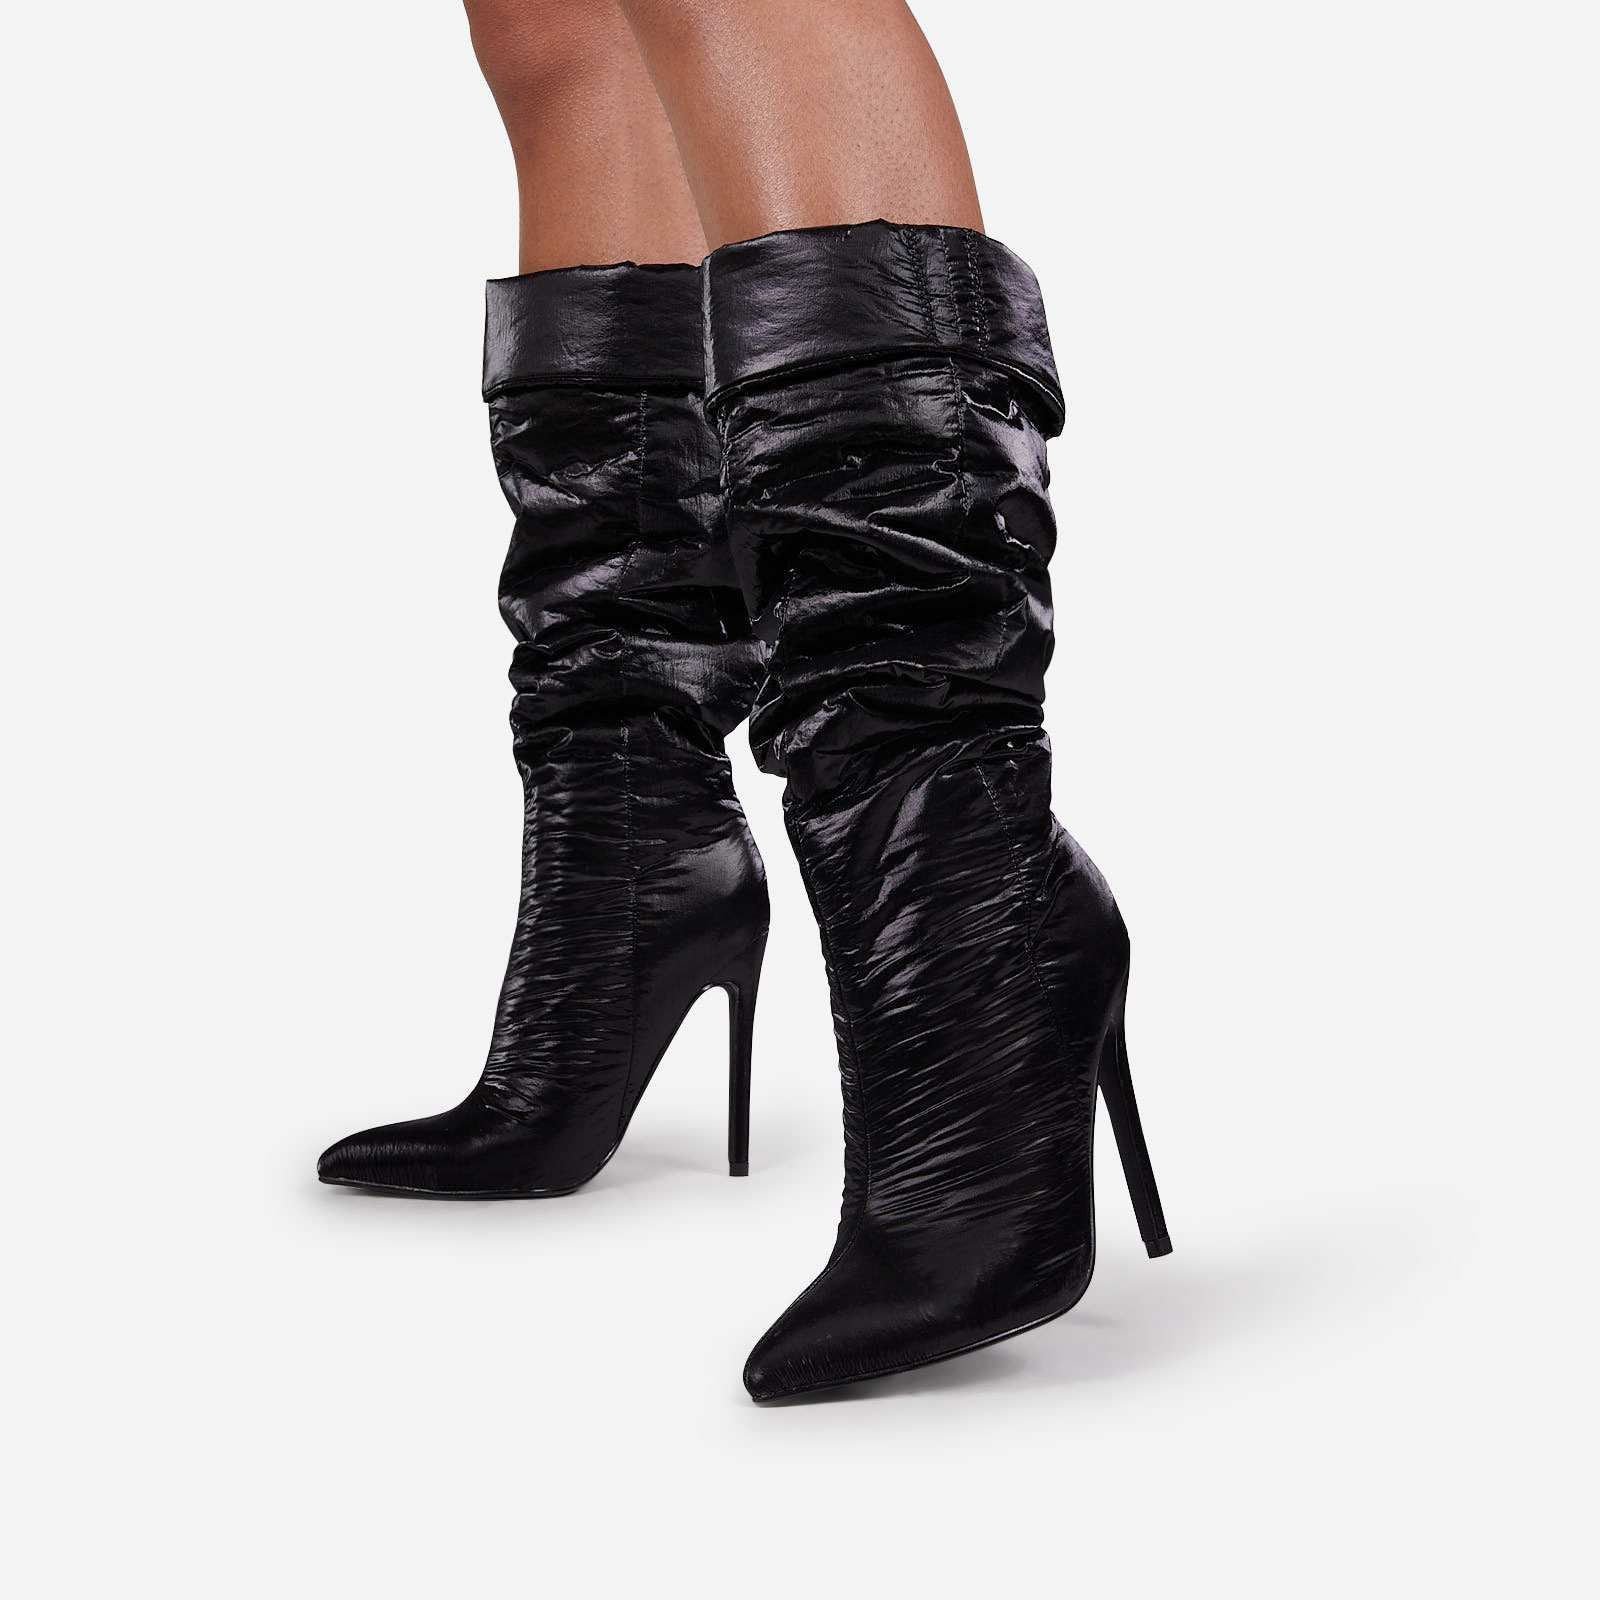 Ride-Or-Die Ruched Knee High Long Boot In Black High Shine Nylon